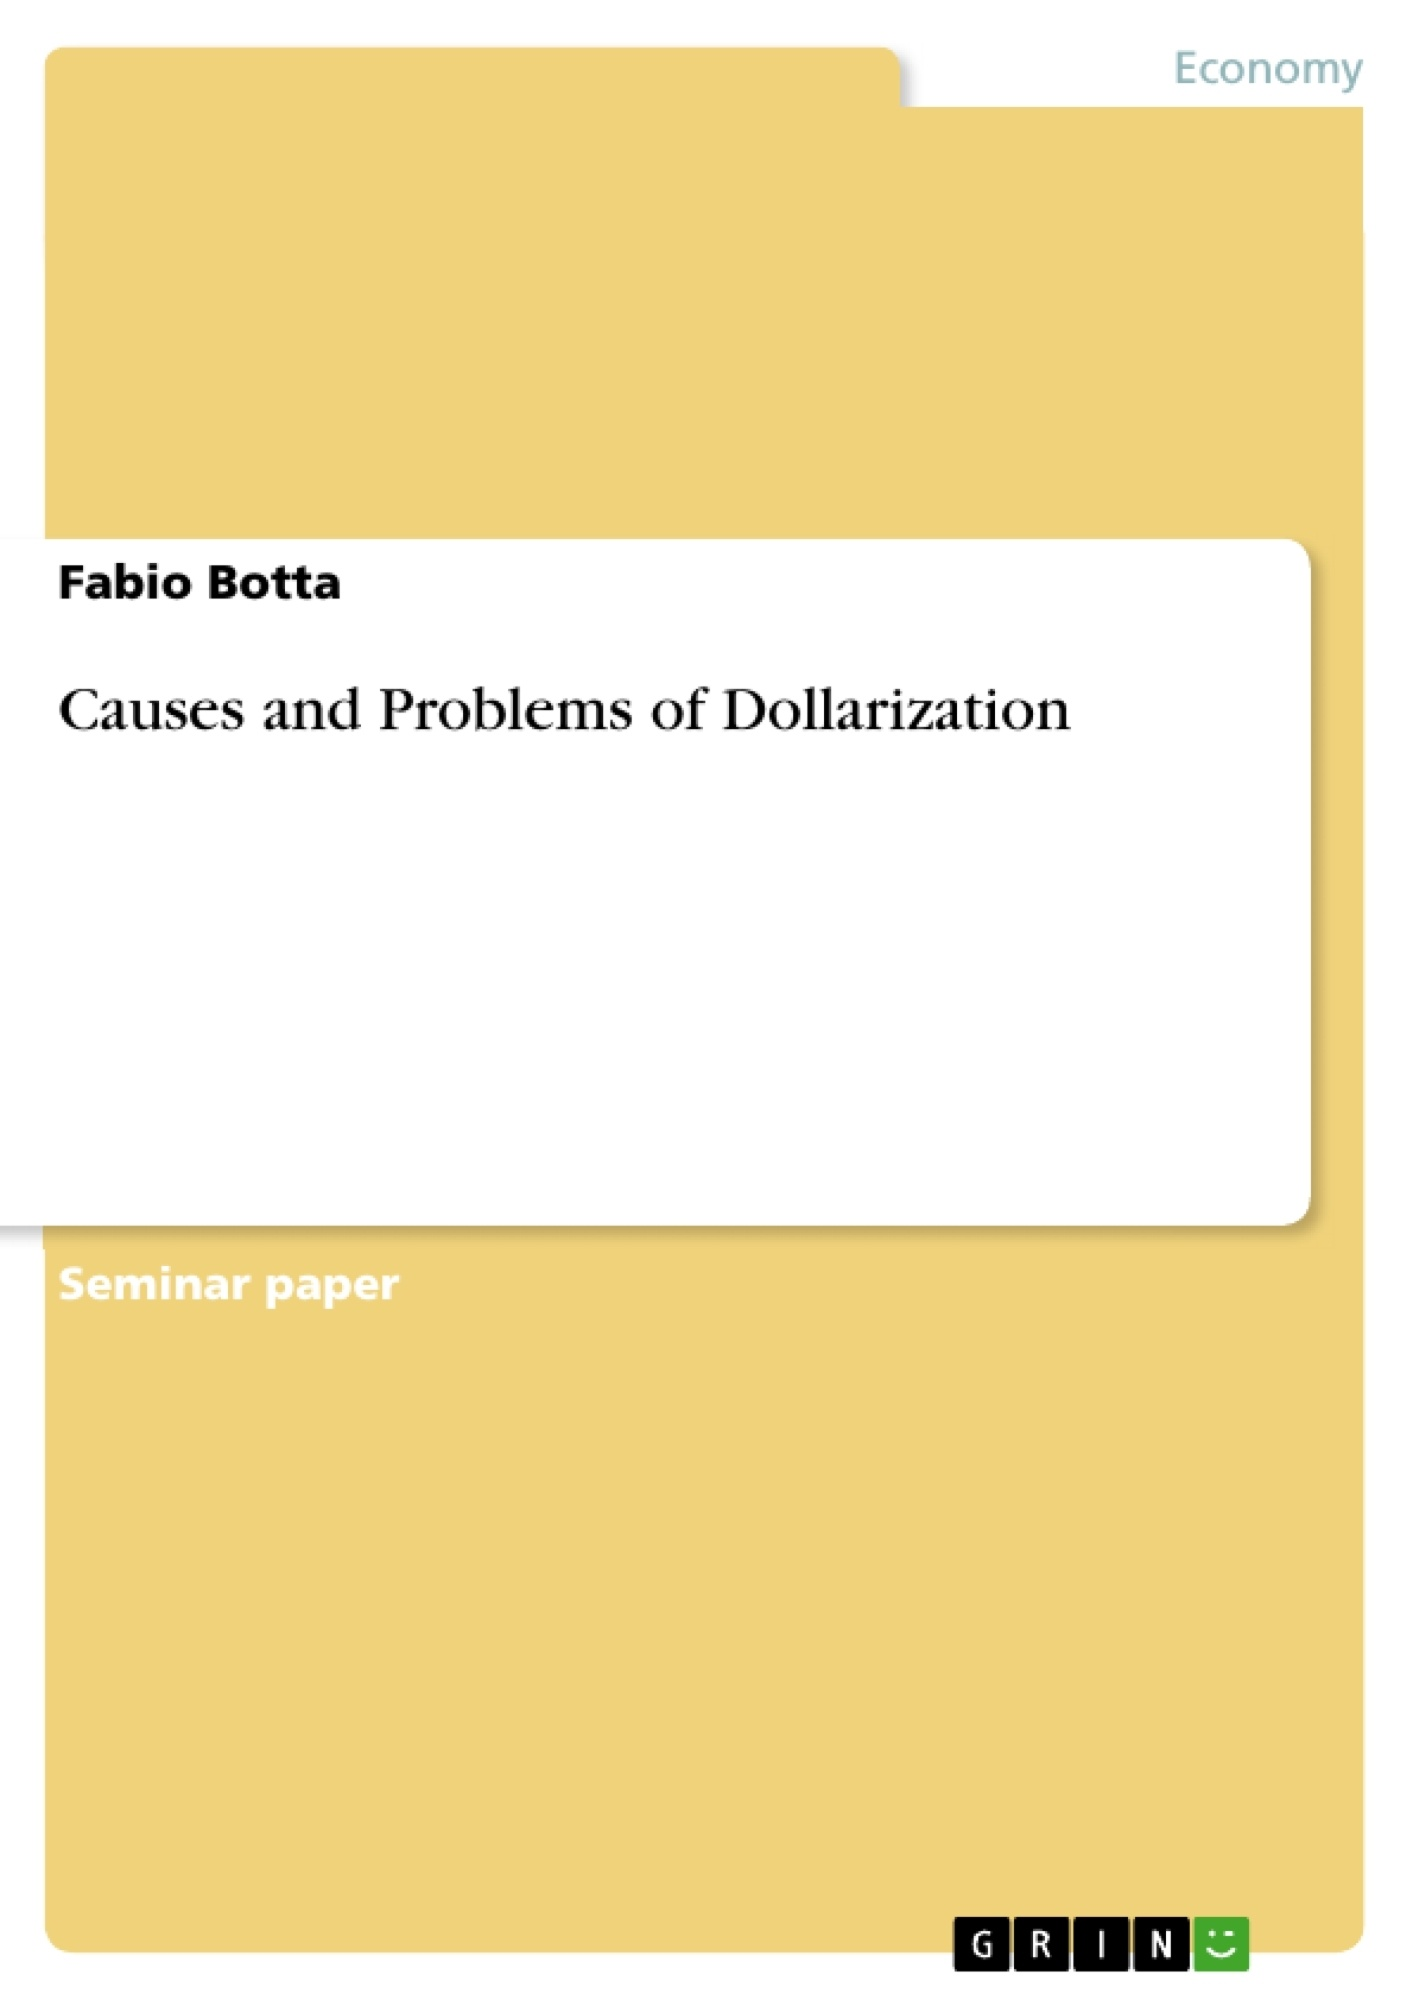 Title: Causes and Problems of Dollarization